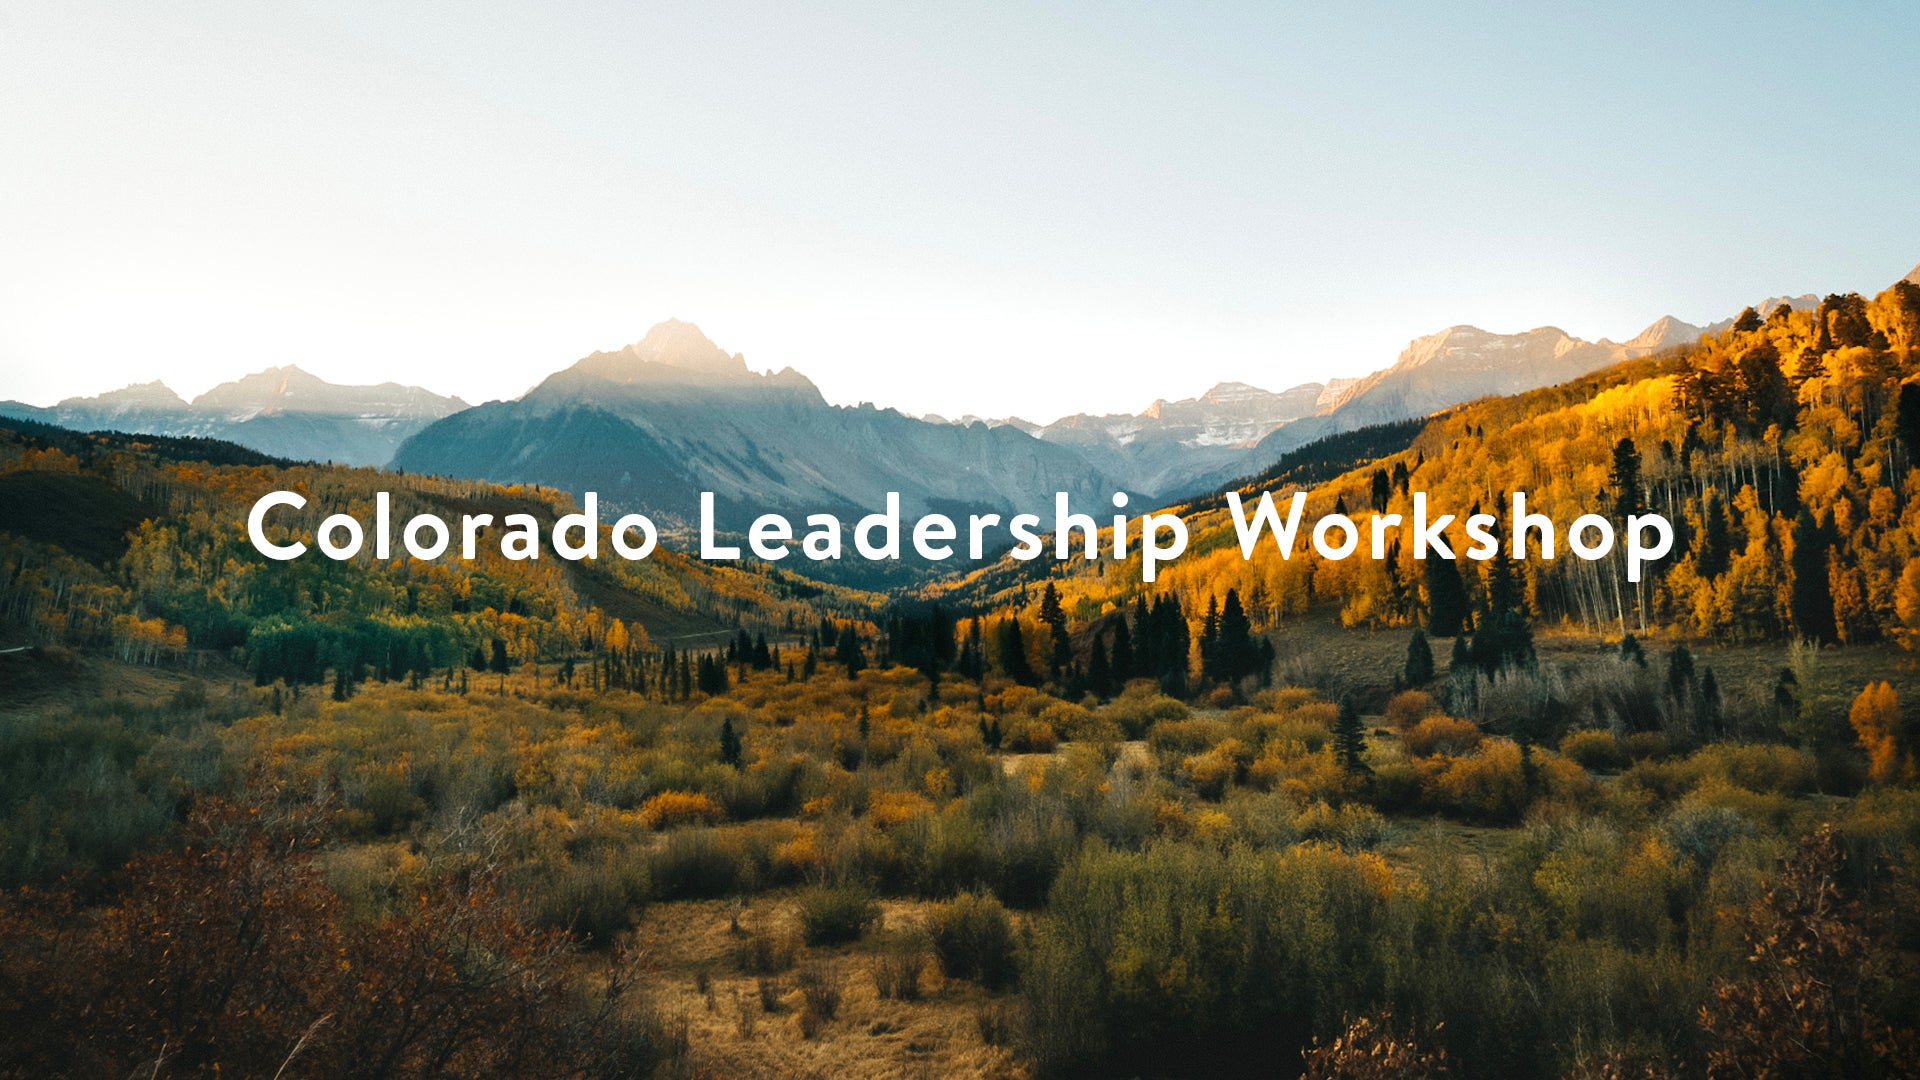 Colorado Leadership Workshop